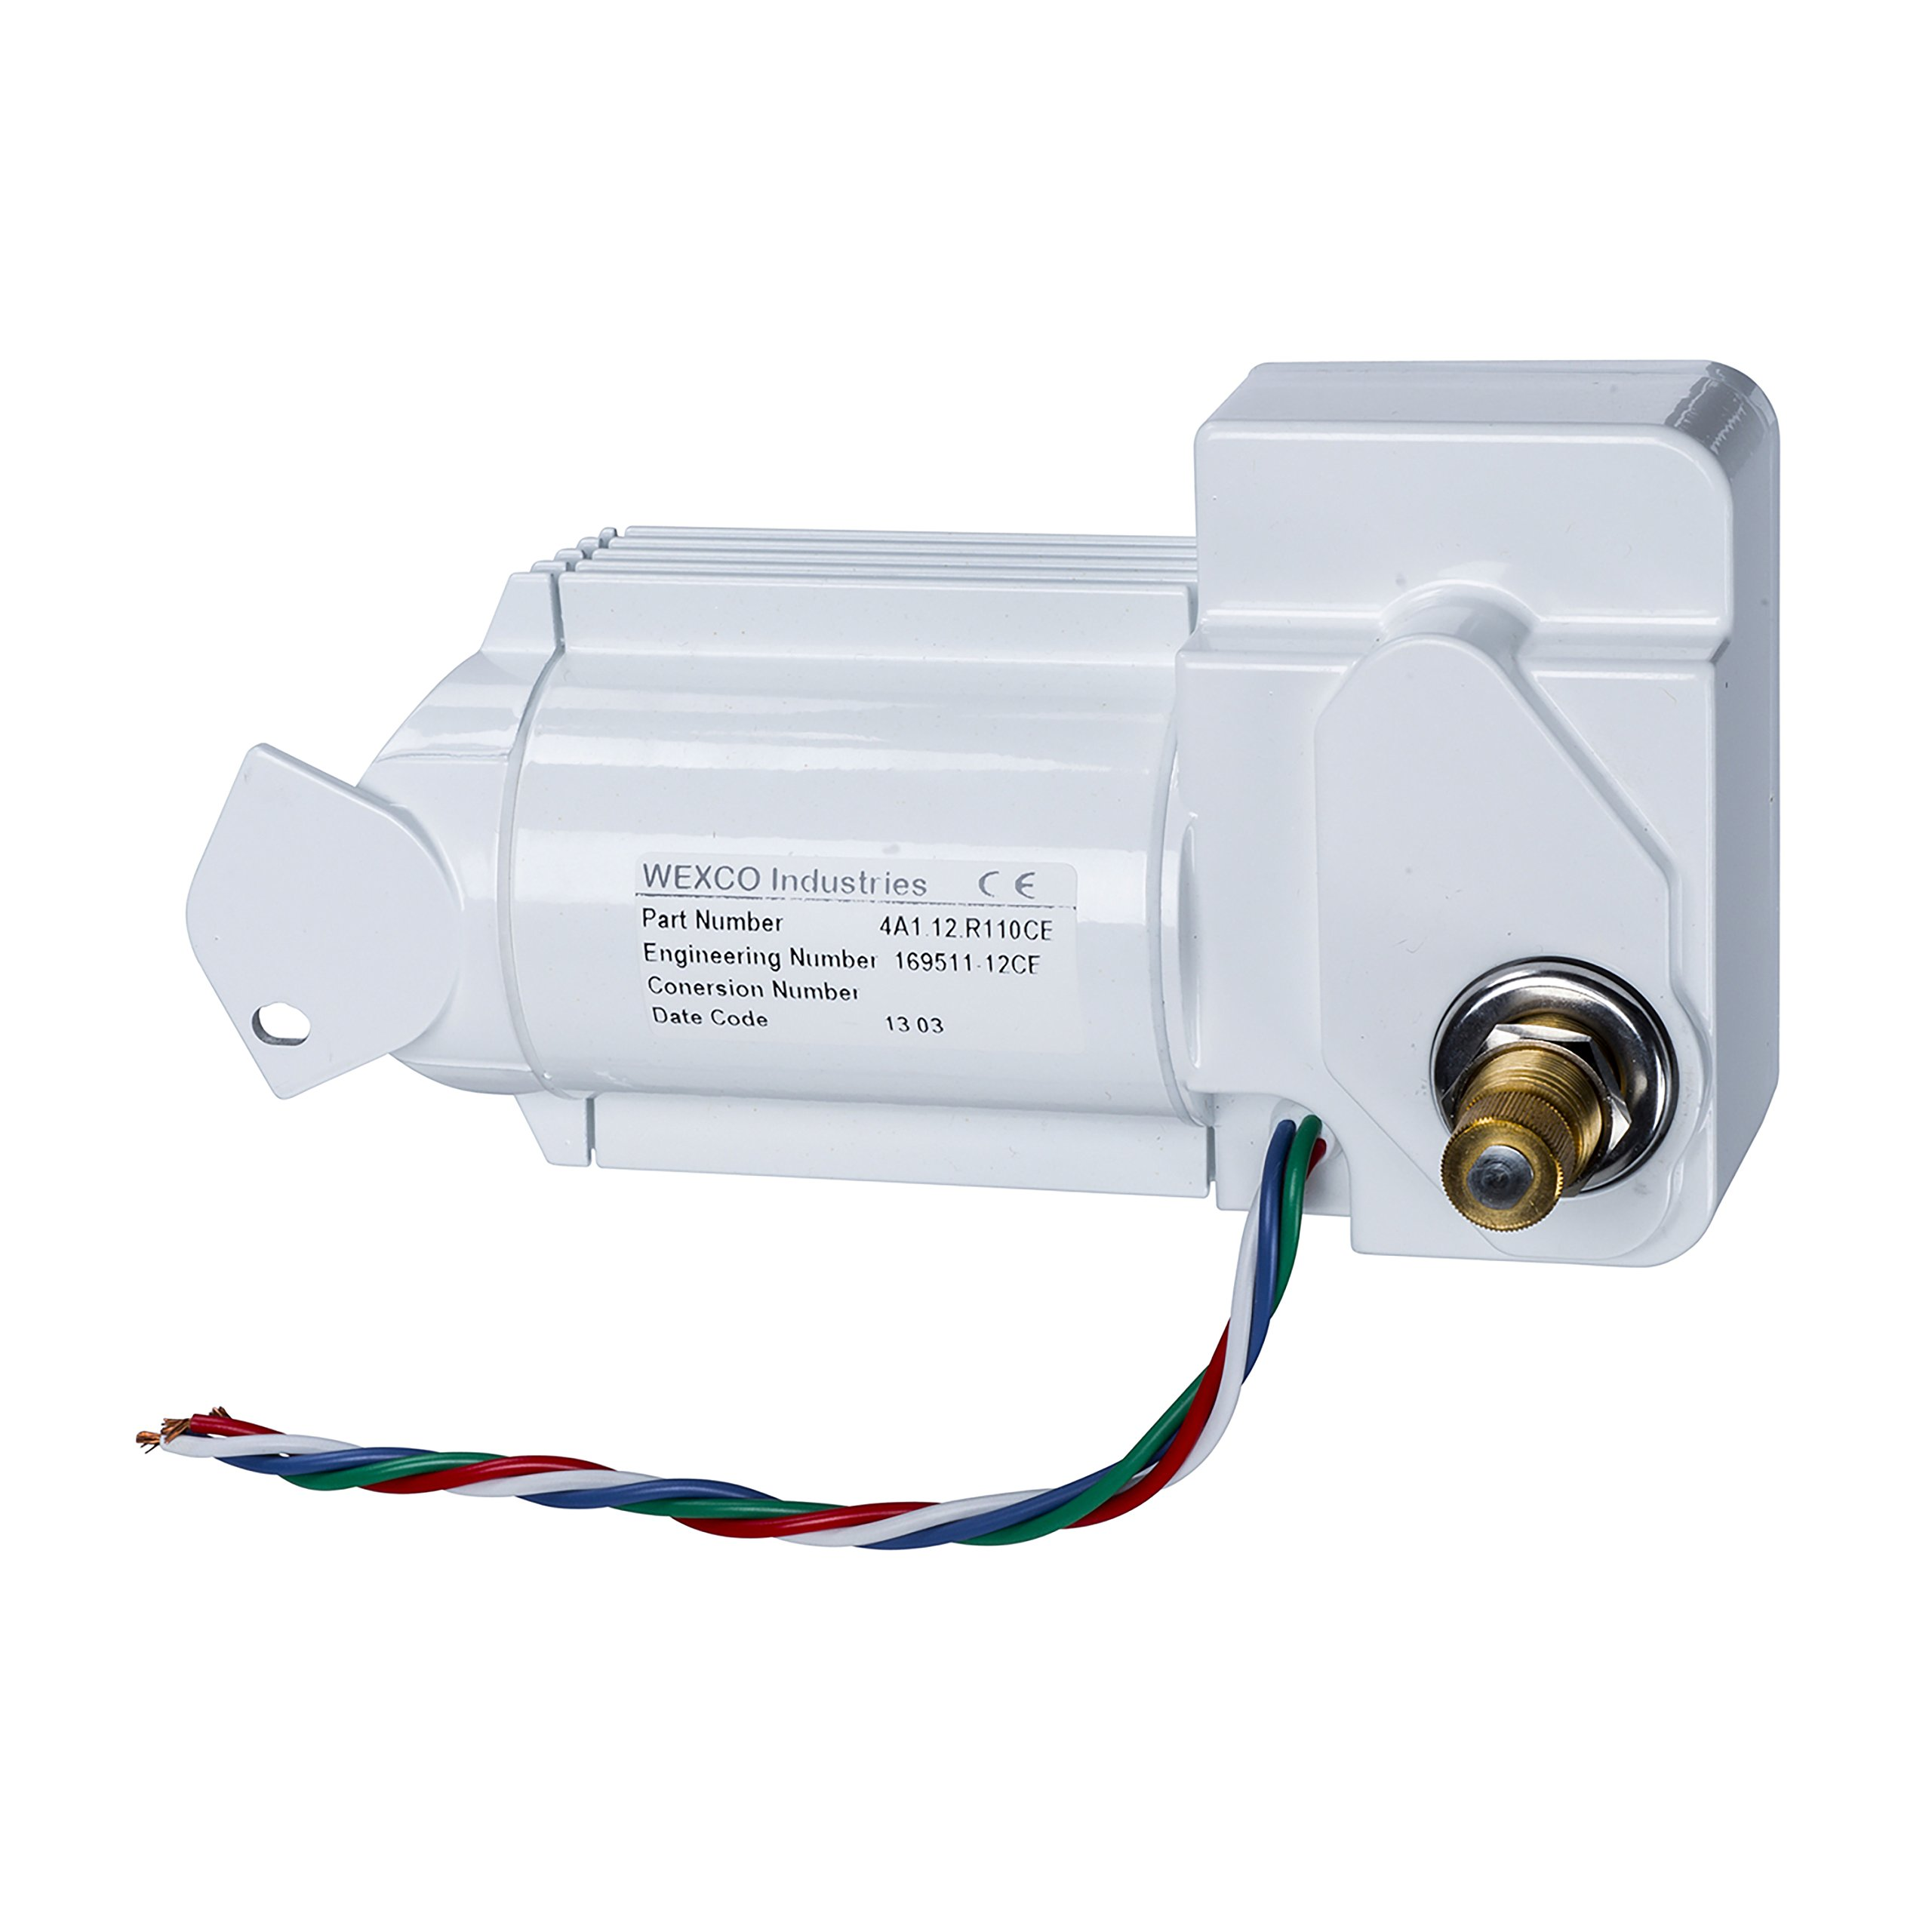 Wexco Wiper Motor, 4A1.24.R110CE, One and a half inch (1.5'') shaft, 24V, CE Certified